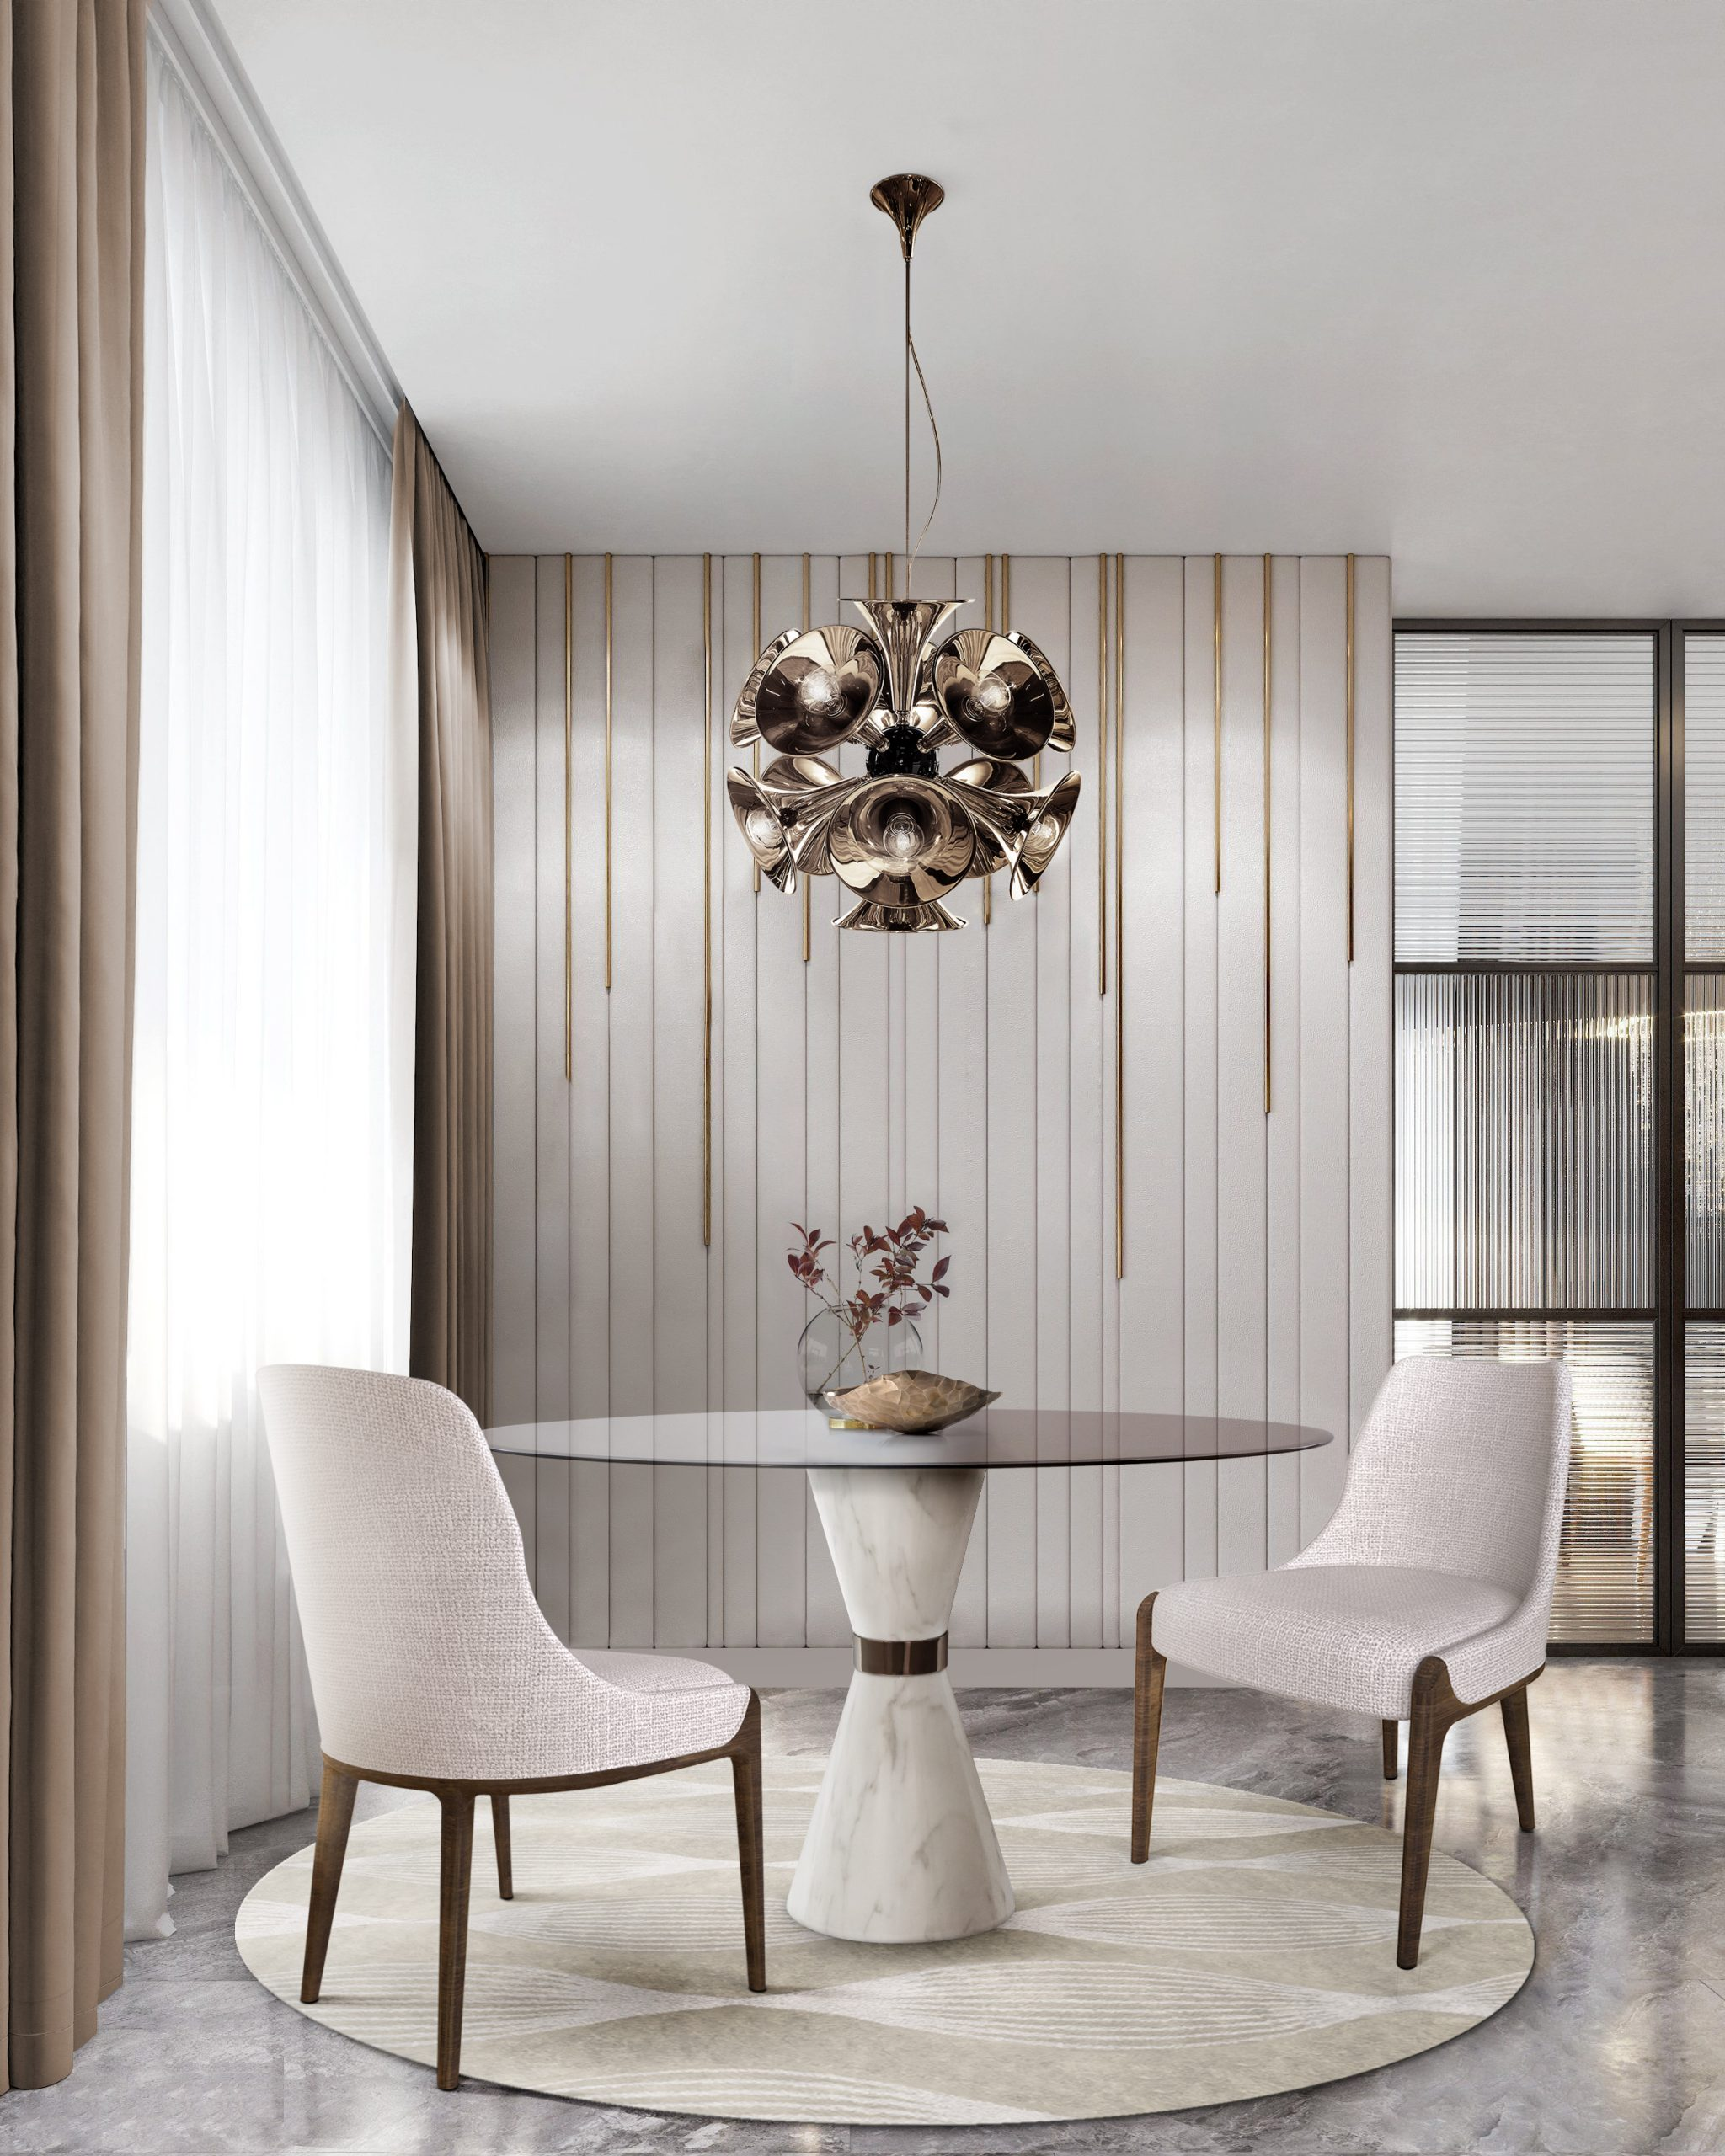 We'll Finally State the Difference Between Contemporary and Modern Interior Designs! contemporary and modern We'll Finally State the Difference Between Contemporary and Modern Interior Designs! 7 scaled